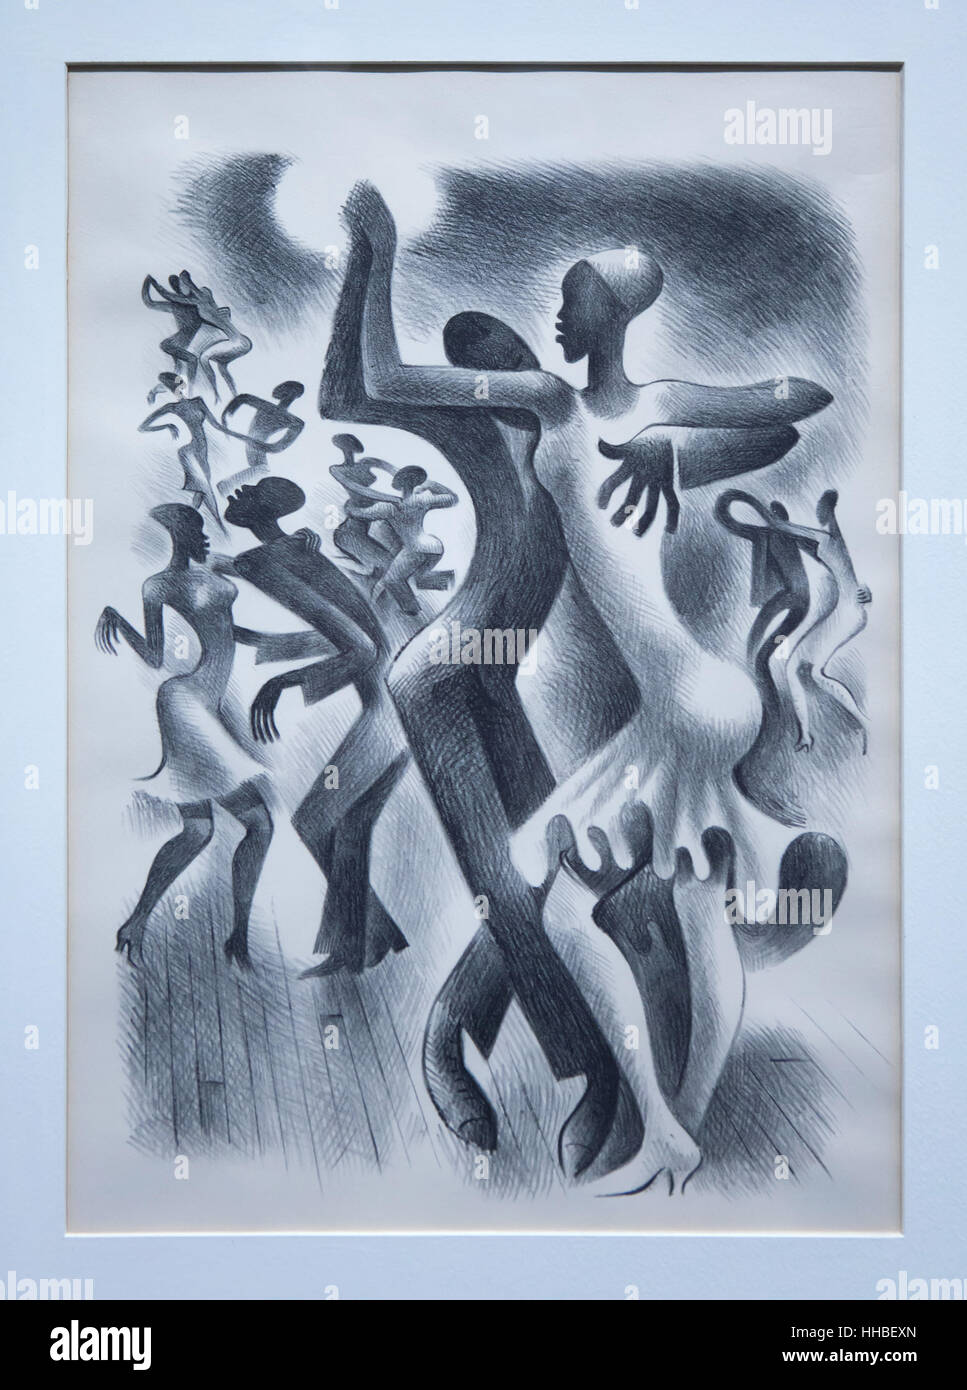 Drawing Harlem (1939) by Mexican caricaturist Miguel Covarrubias for Vanity Fair Magazine displayed at the exhibition Stock Photo